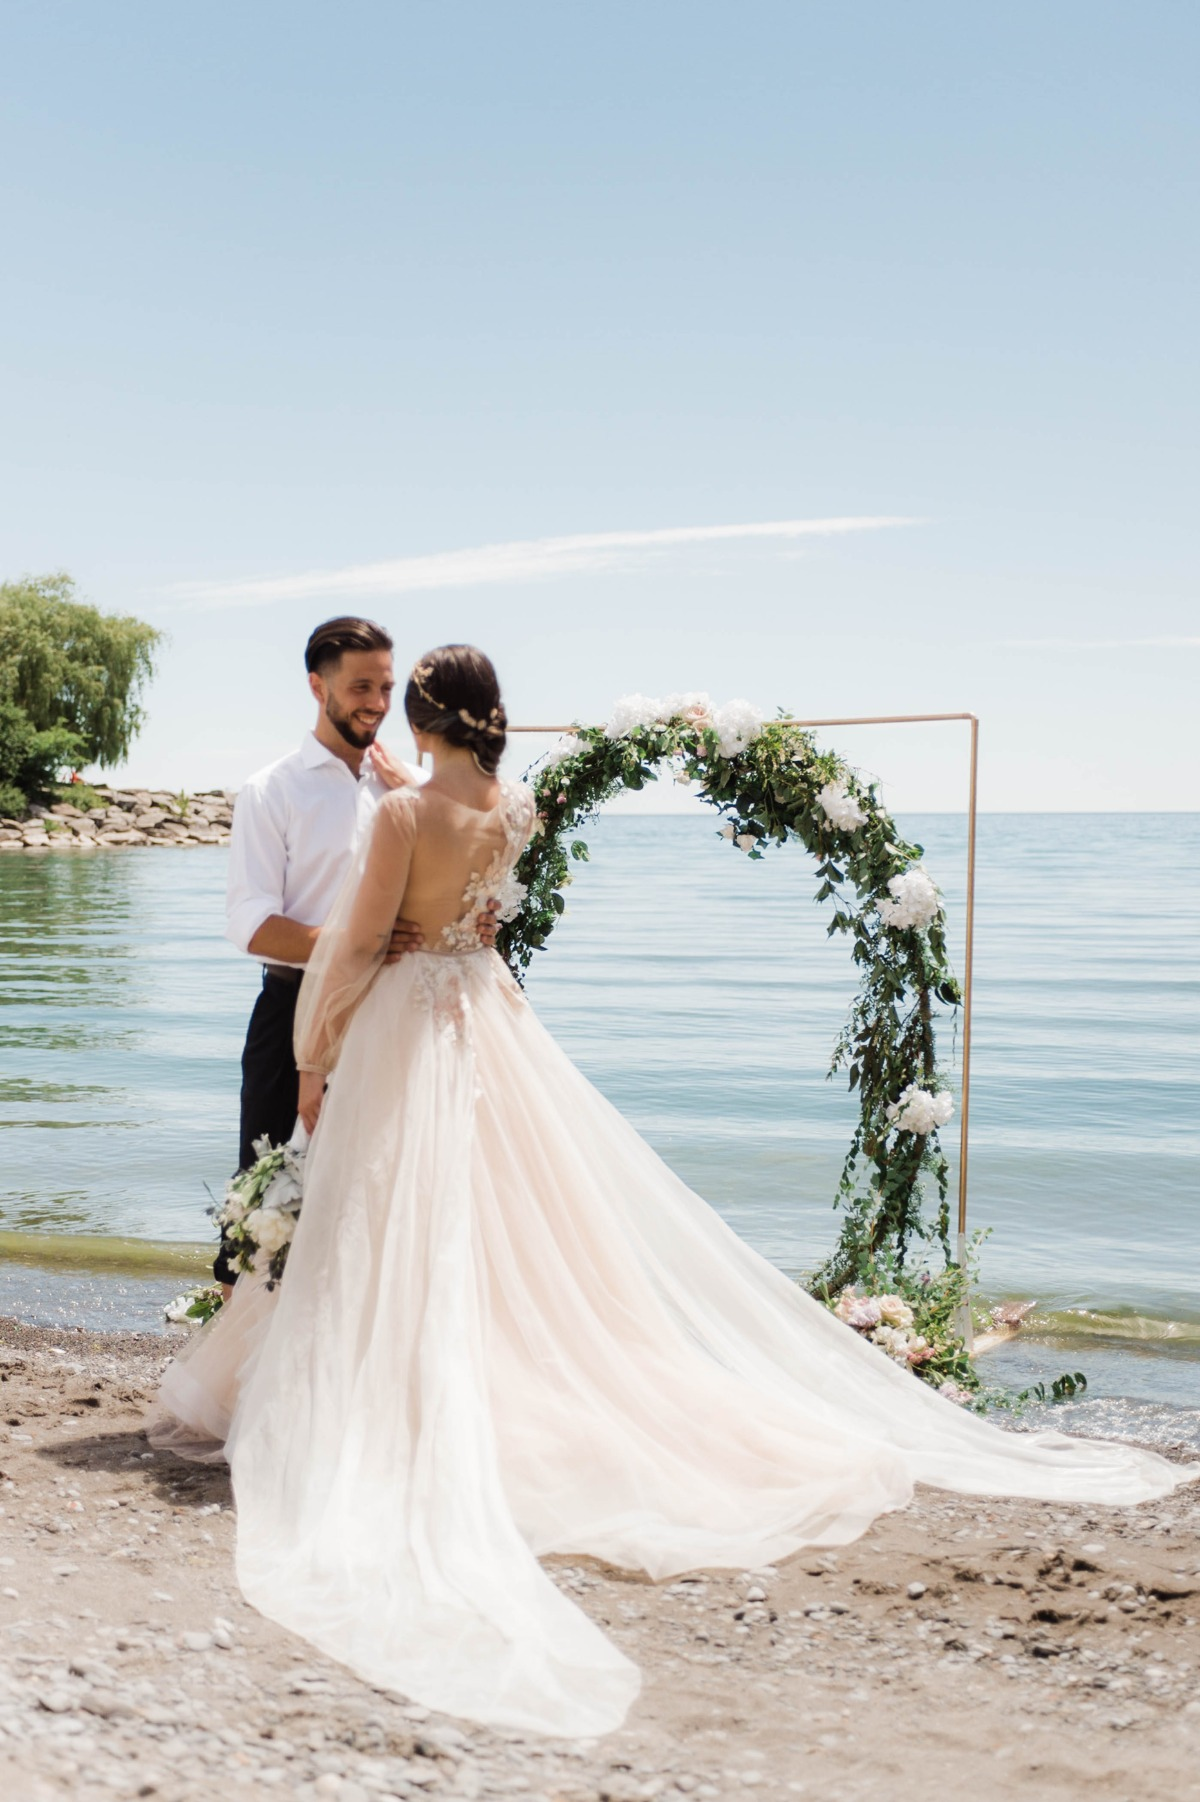 romantic beach wedding idea